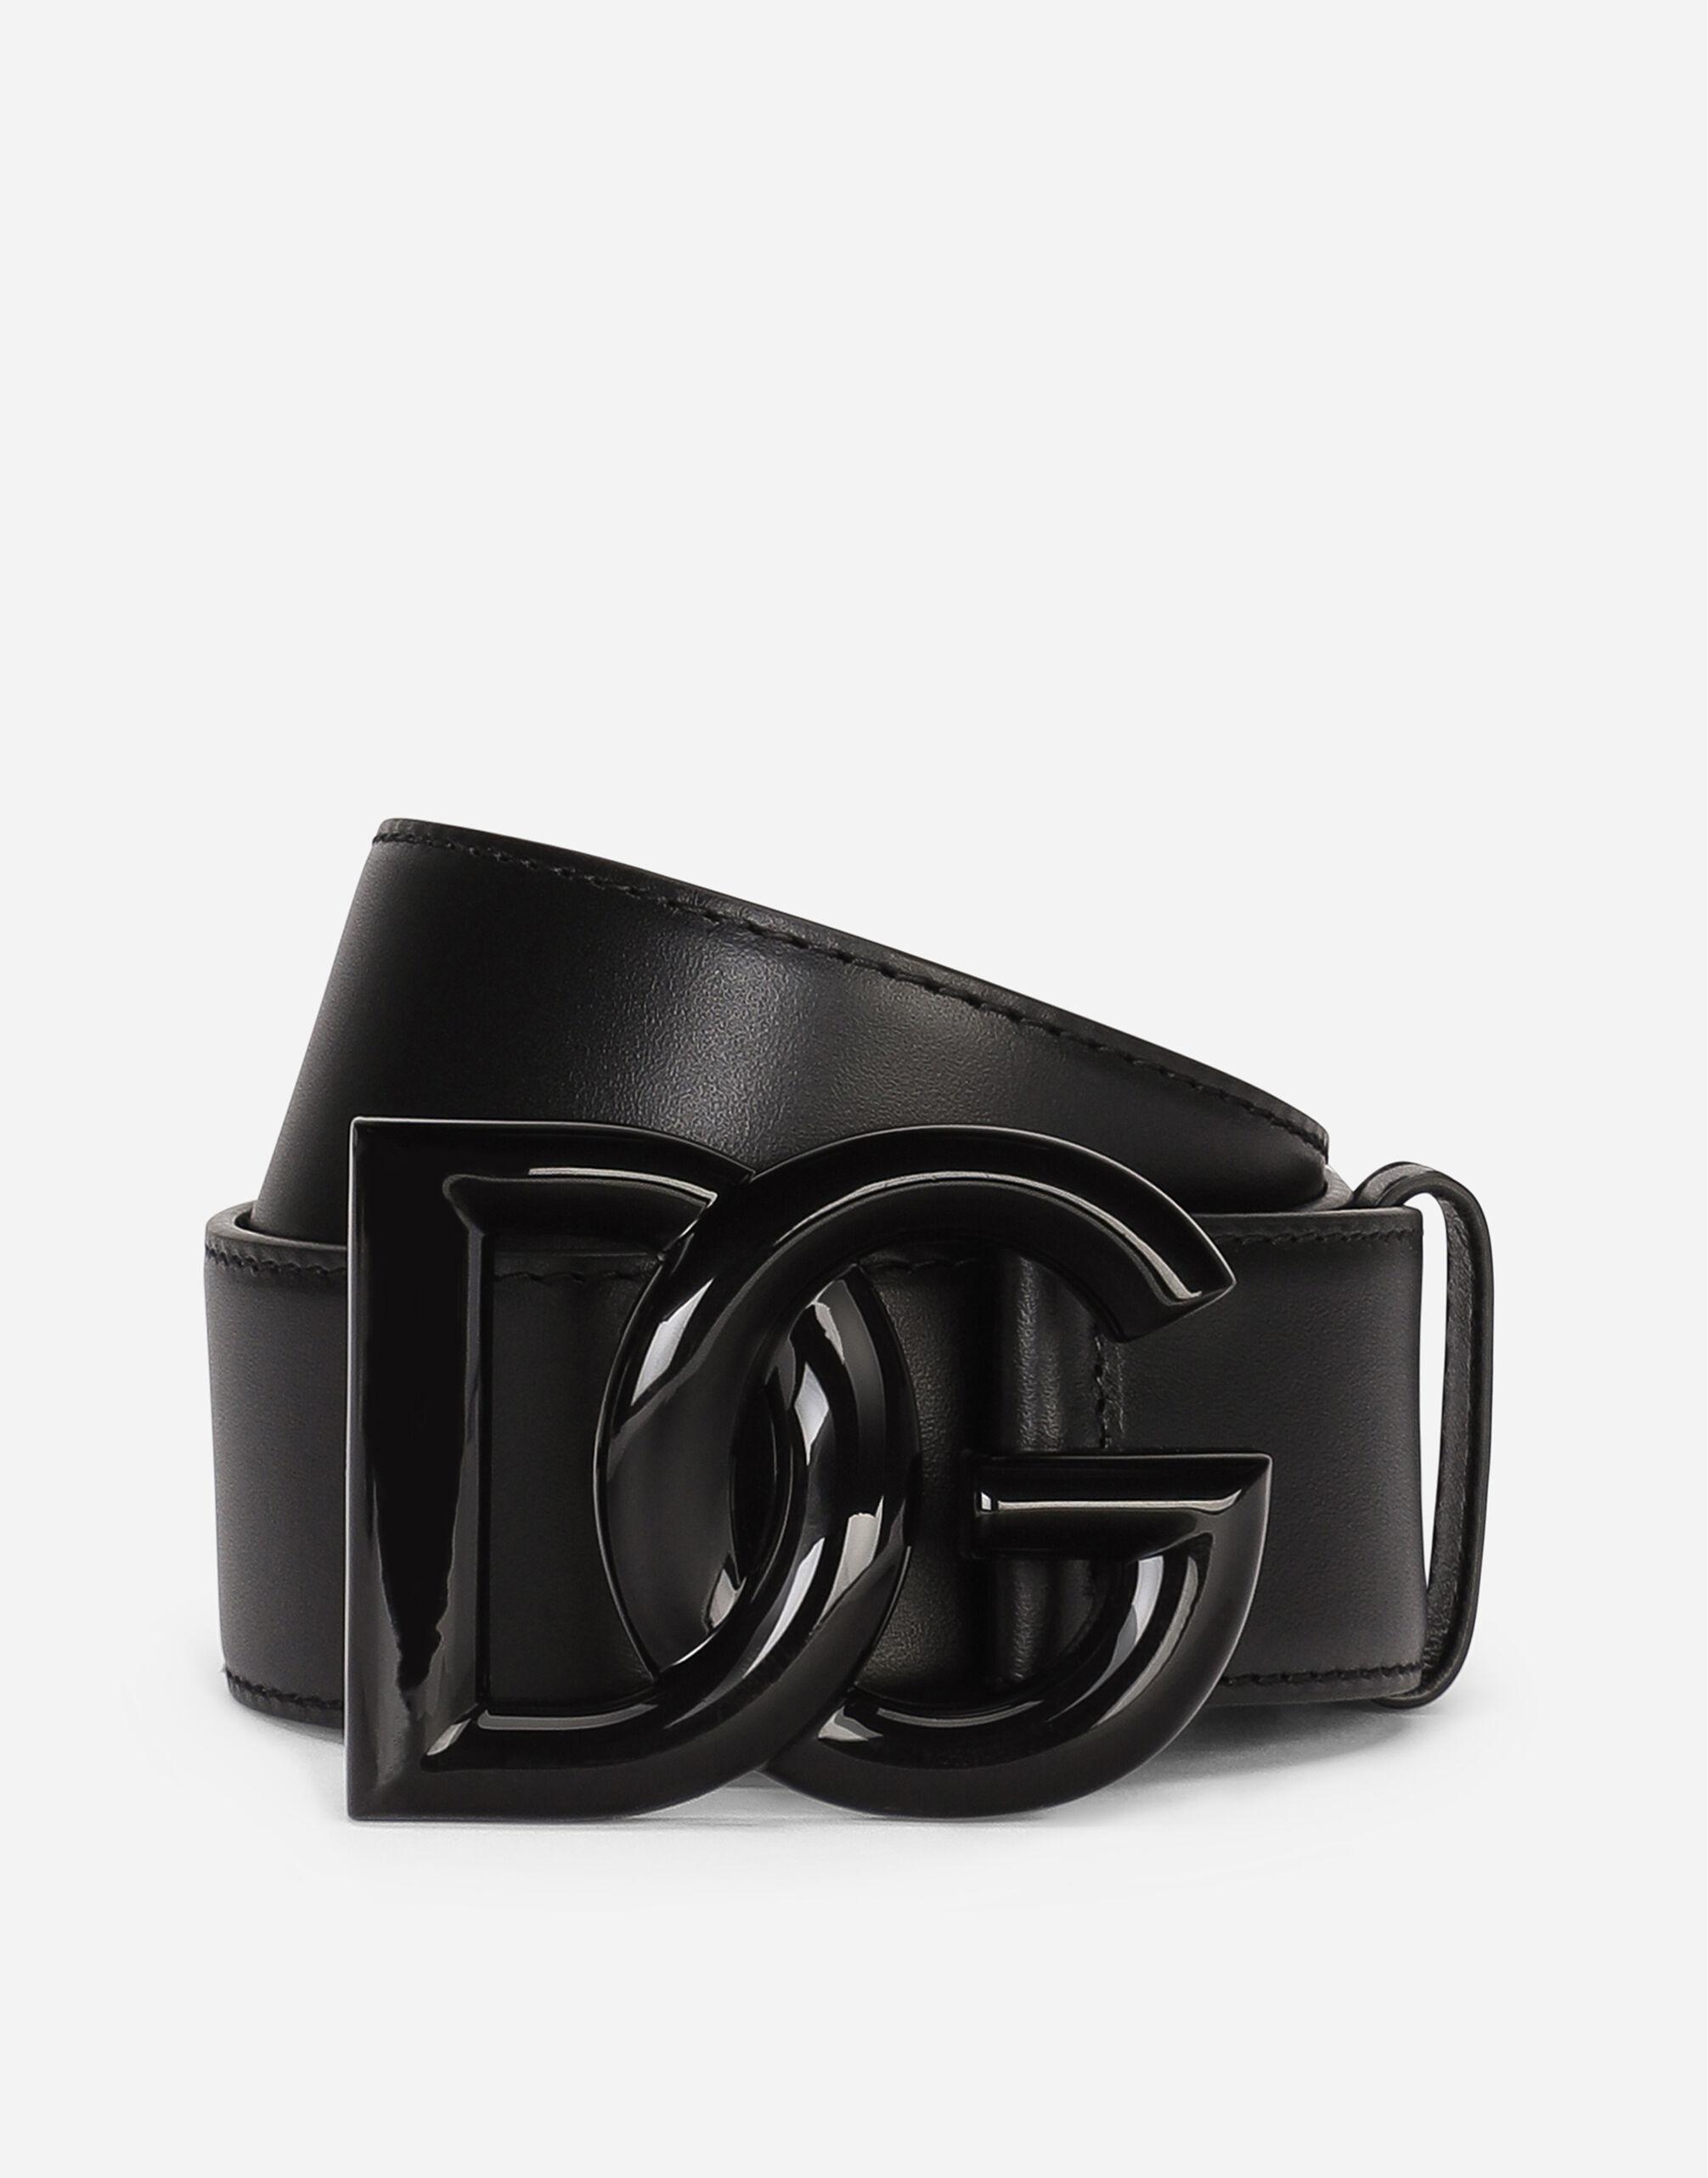 Leather belt with crossover DG logo buckle